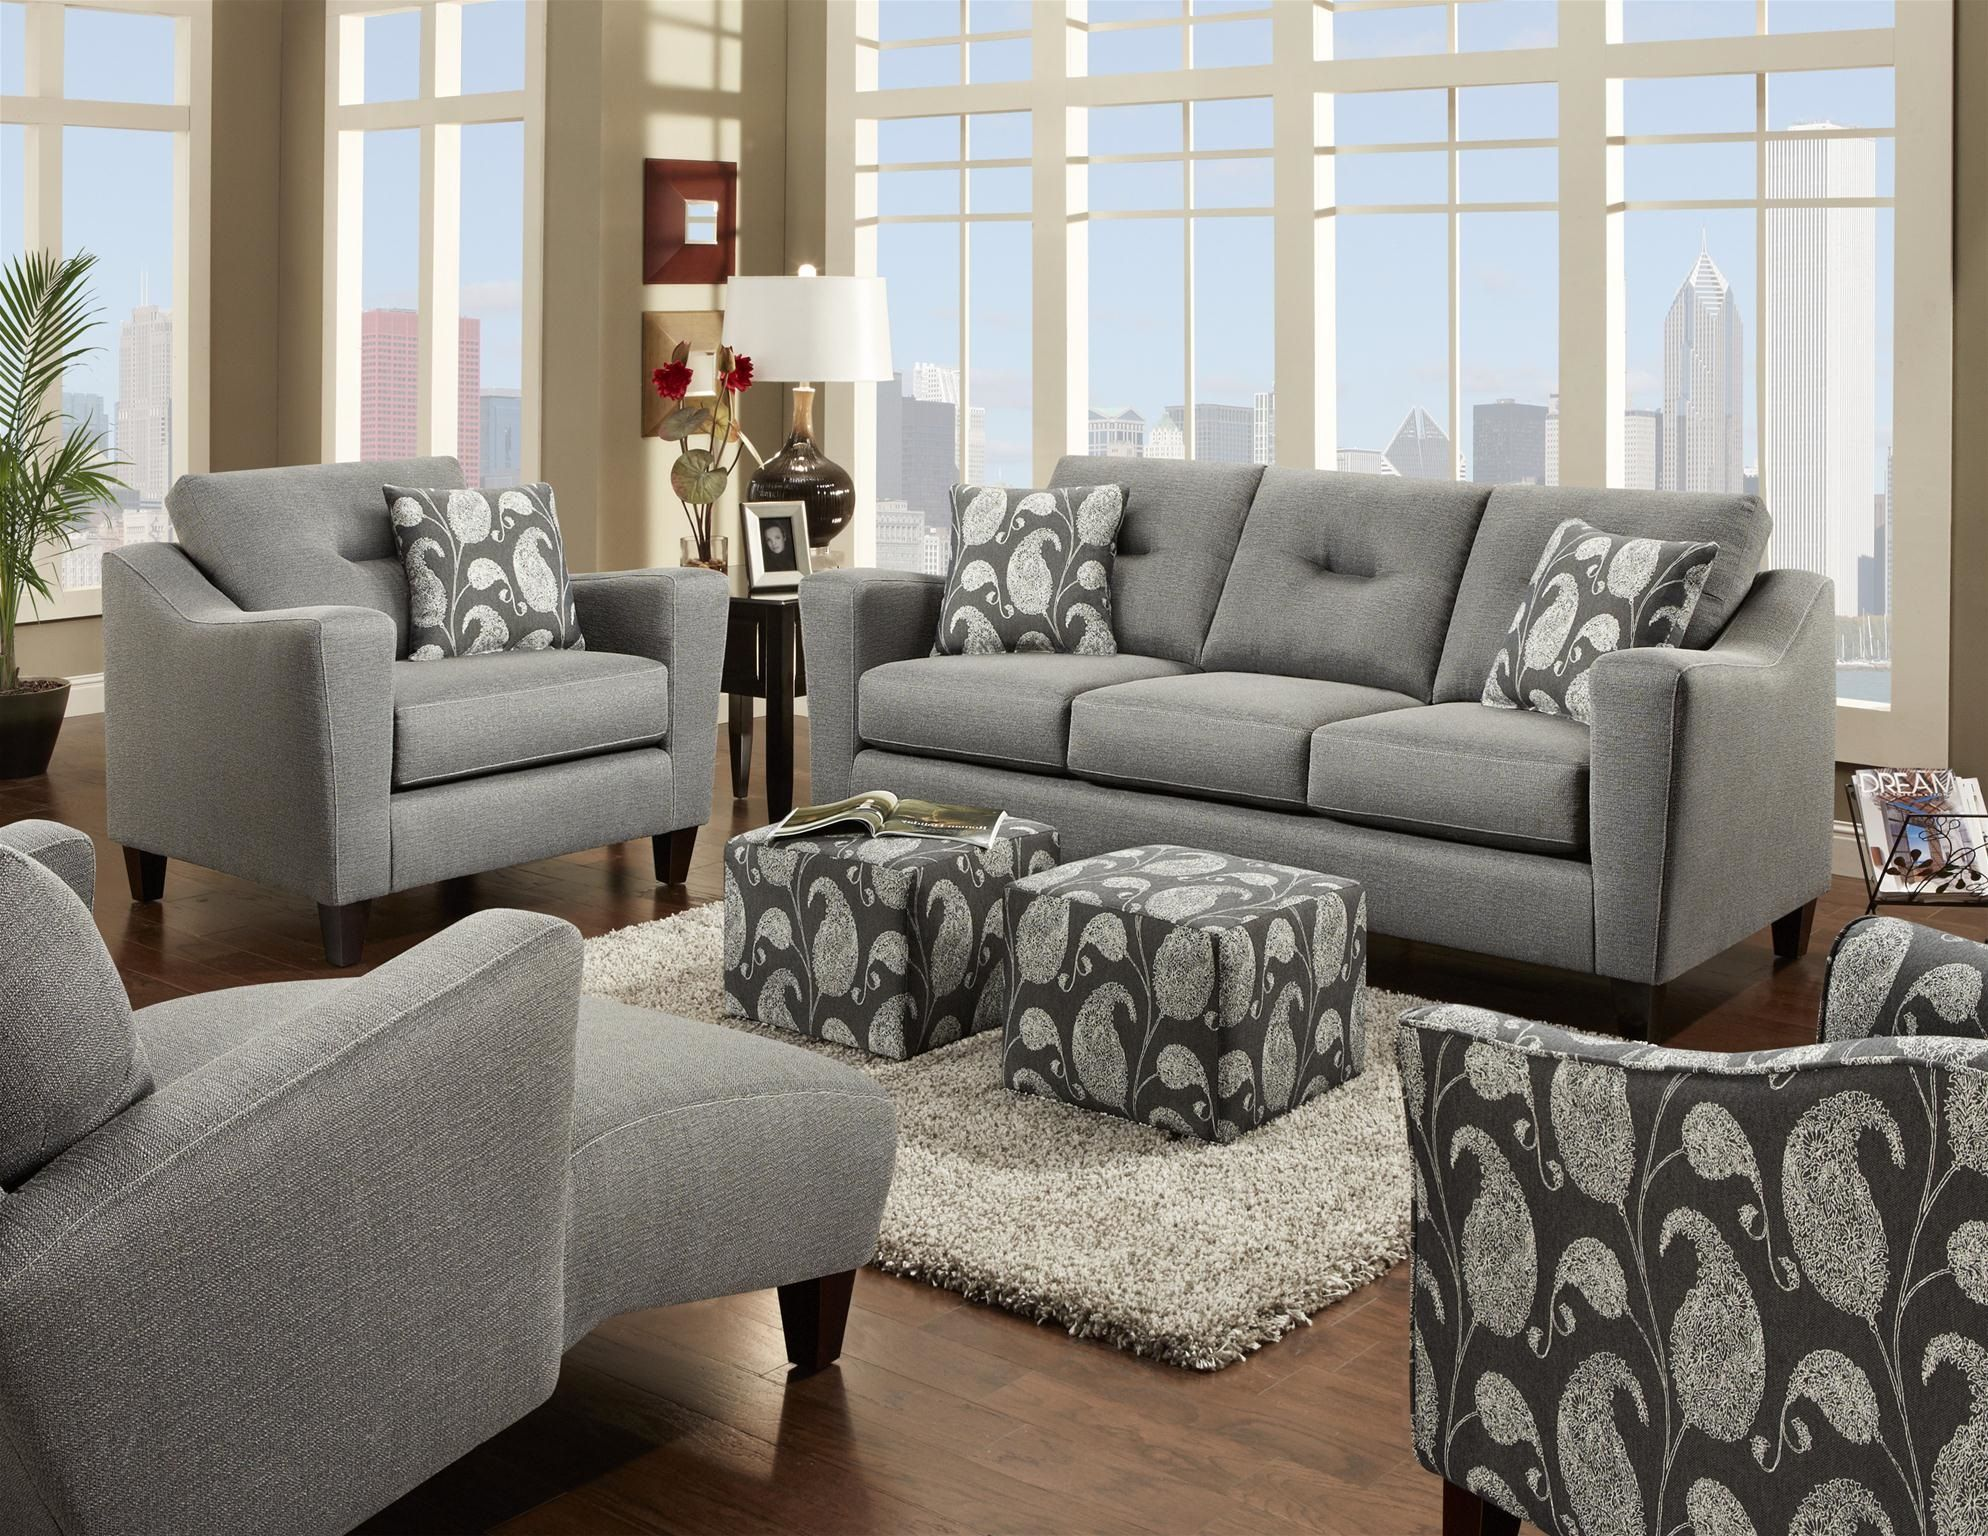 Living Room Furniture Kansas City bodie - living room set - 8100apexcinder living room sets from